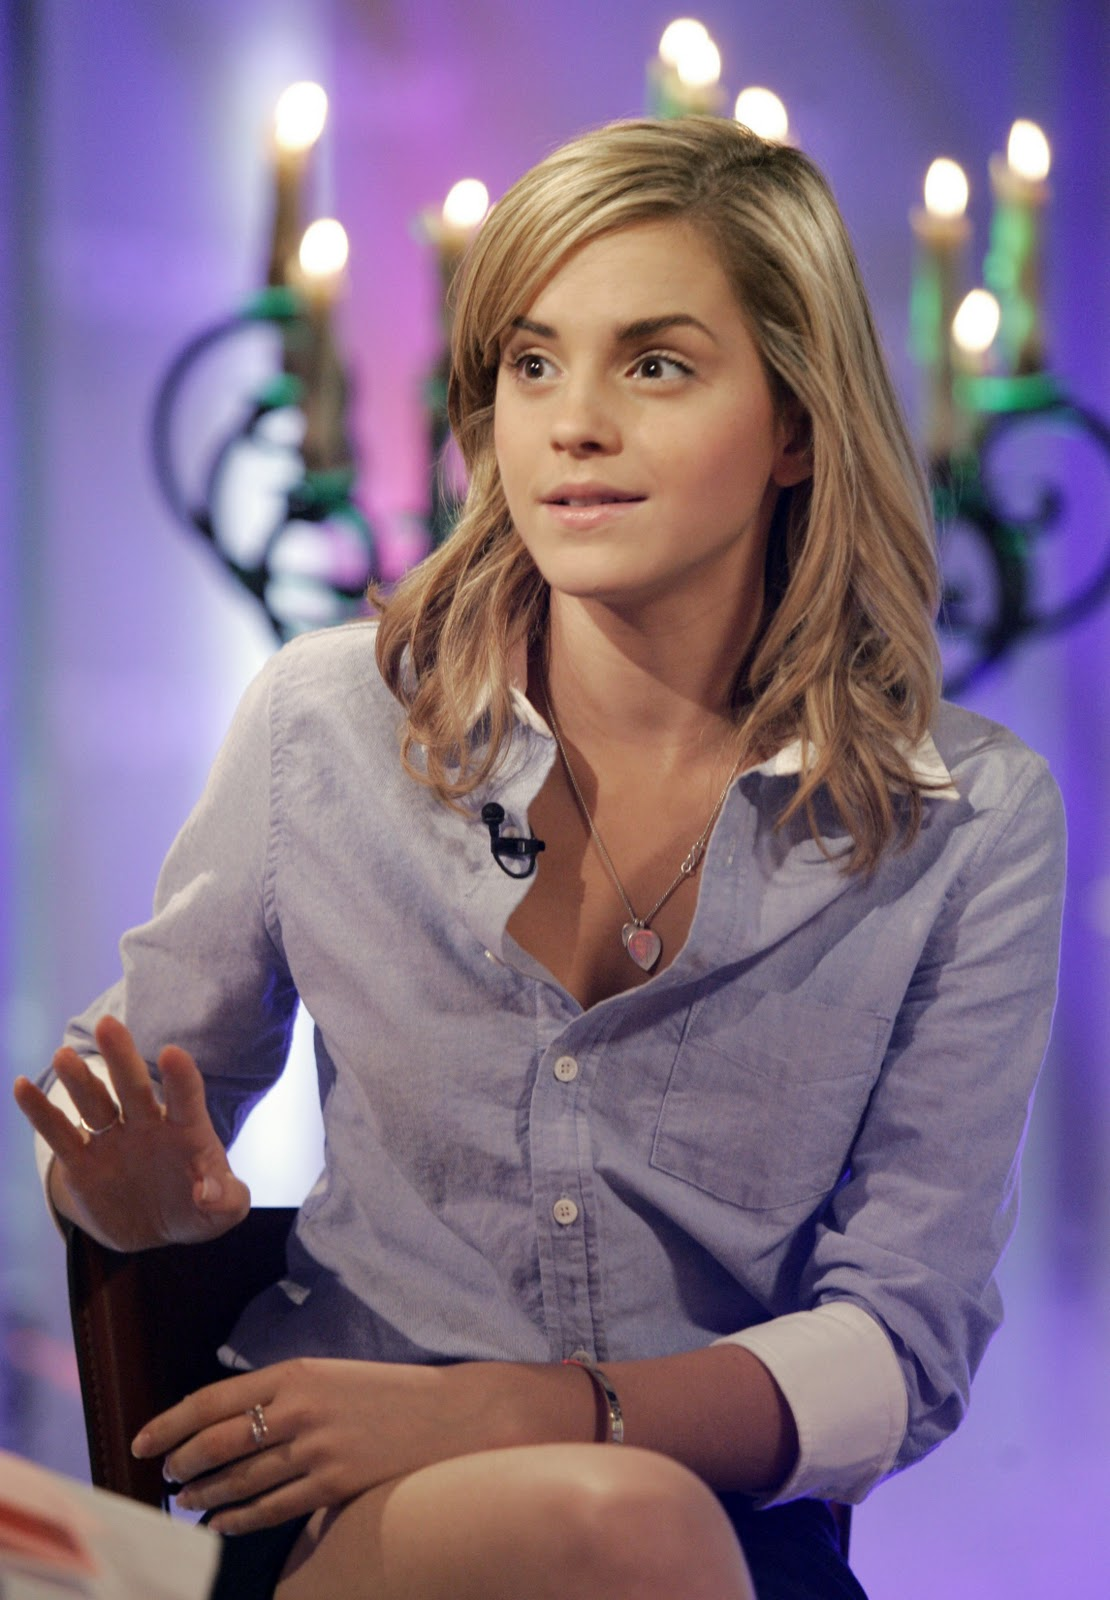 HD wallpapers: Emma Watson hermione granges very beautiful and Hot